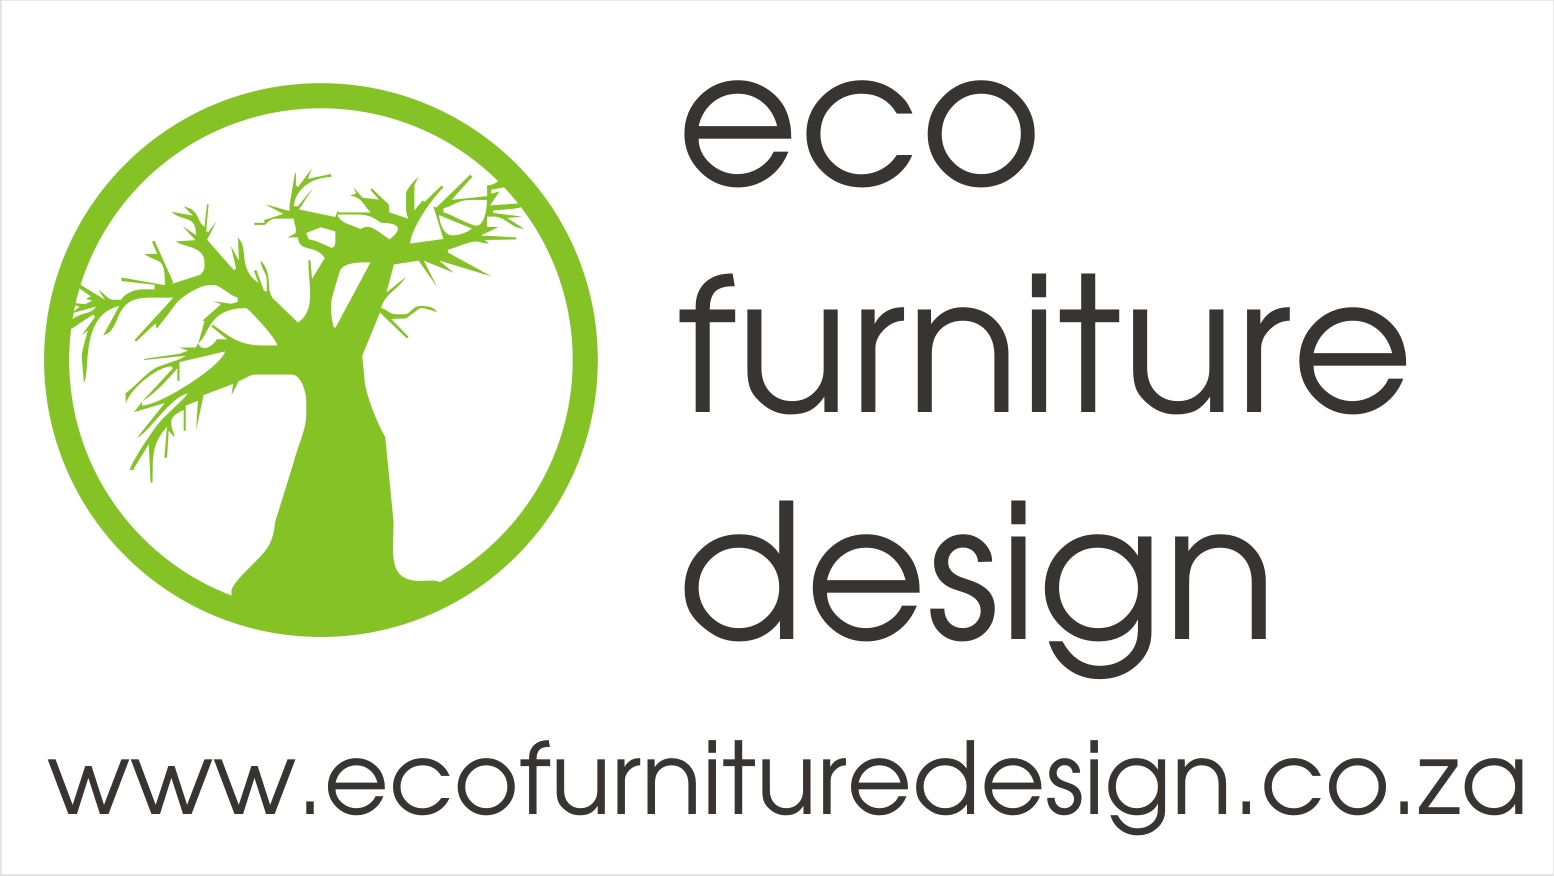 Company logo Eco furniture design -  manufacturer supplier and store South Africa